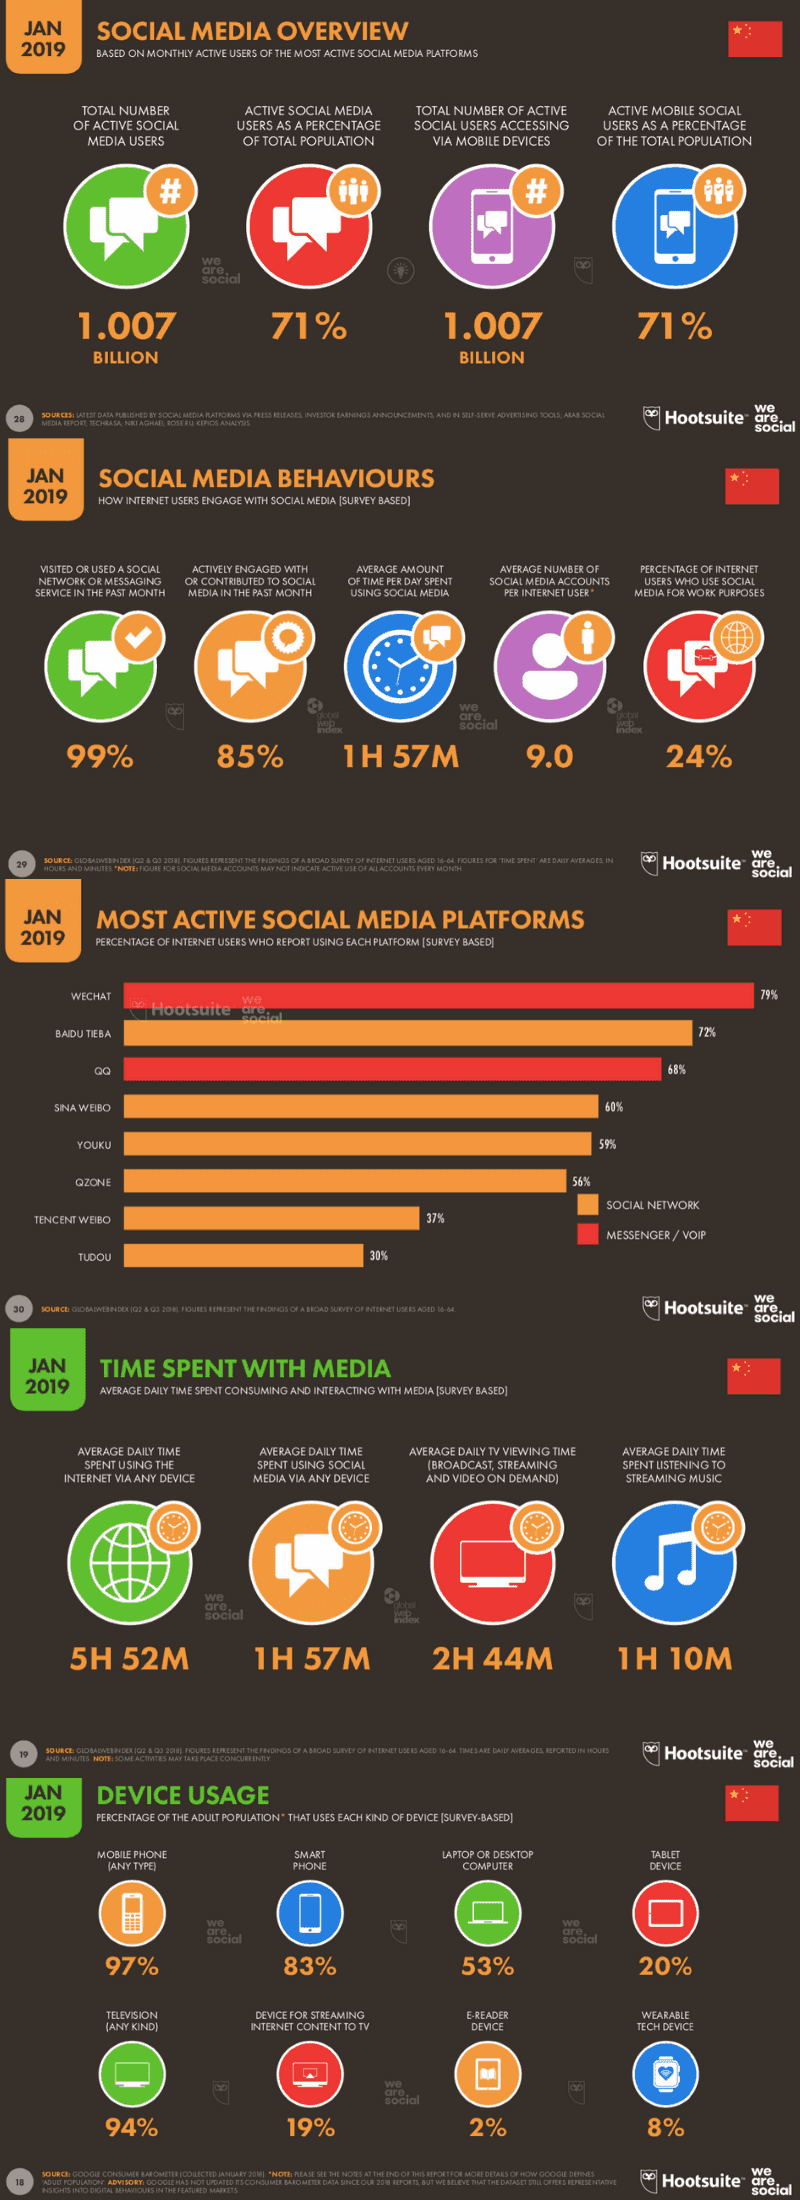 Chinese Social Media: The Top Social Media Networks You Need